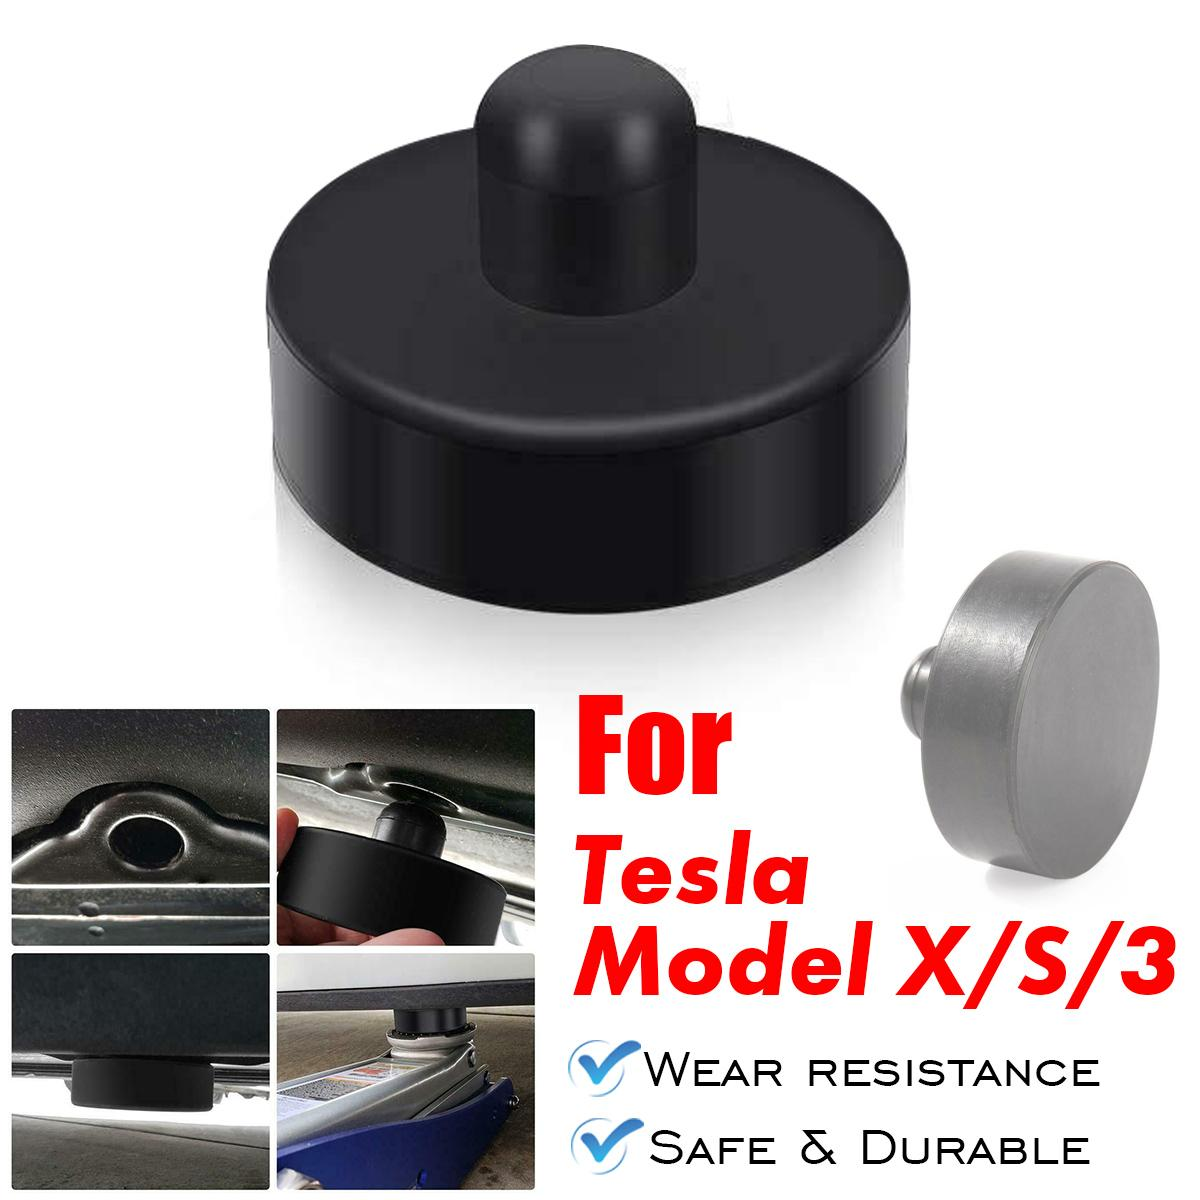 NEW 1/4Pcs Black Rubber Jack Lift Point Pad Adapter Jack Pad Tool Chassis Jack Car Styling Accessories For Tesla Model X/S/3